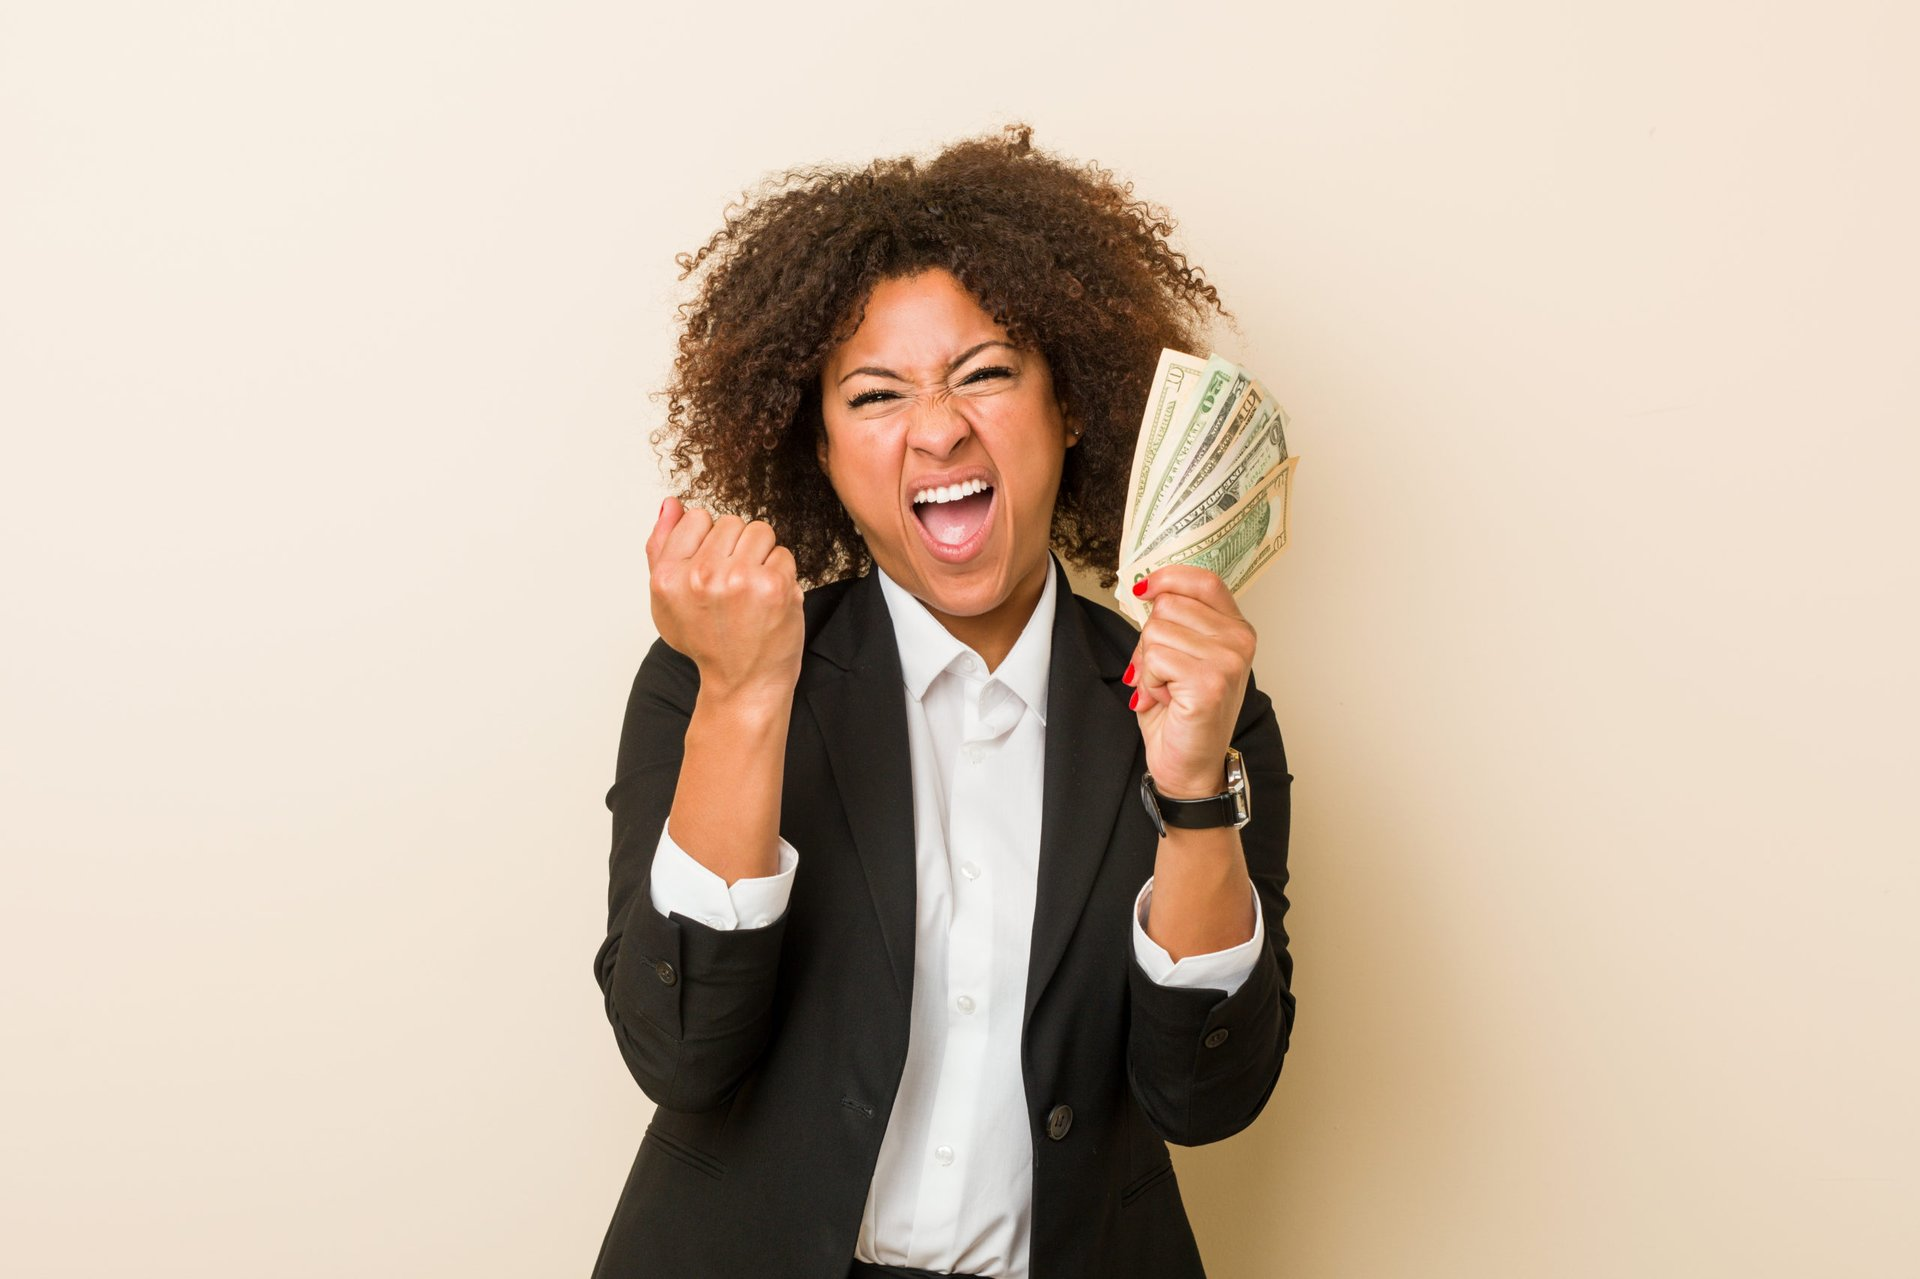 Excited businesswoman with cash